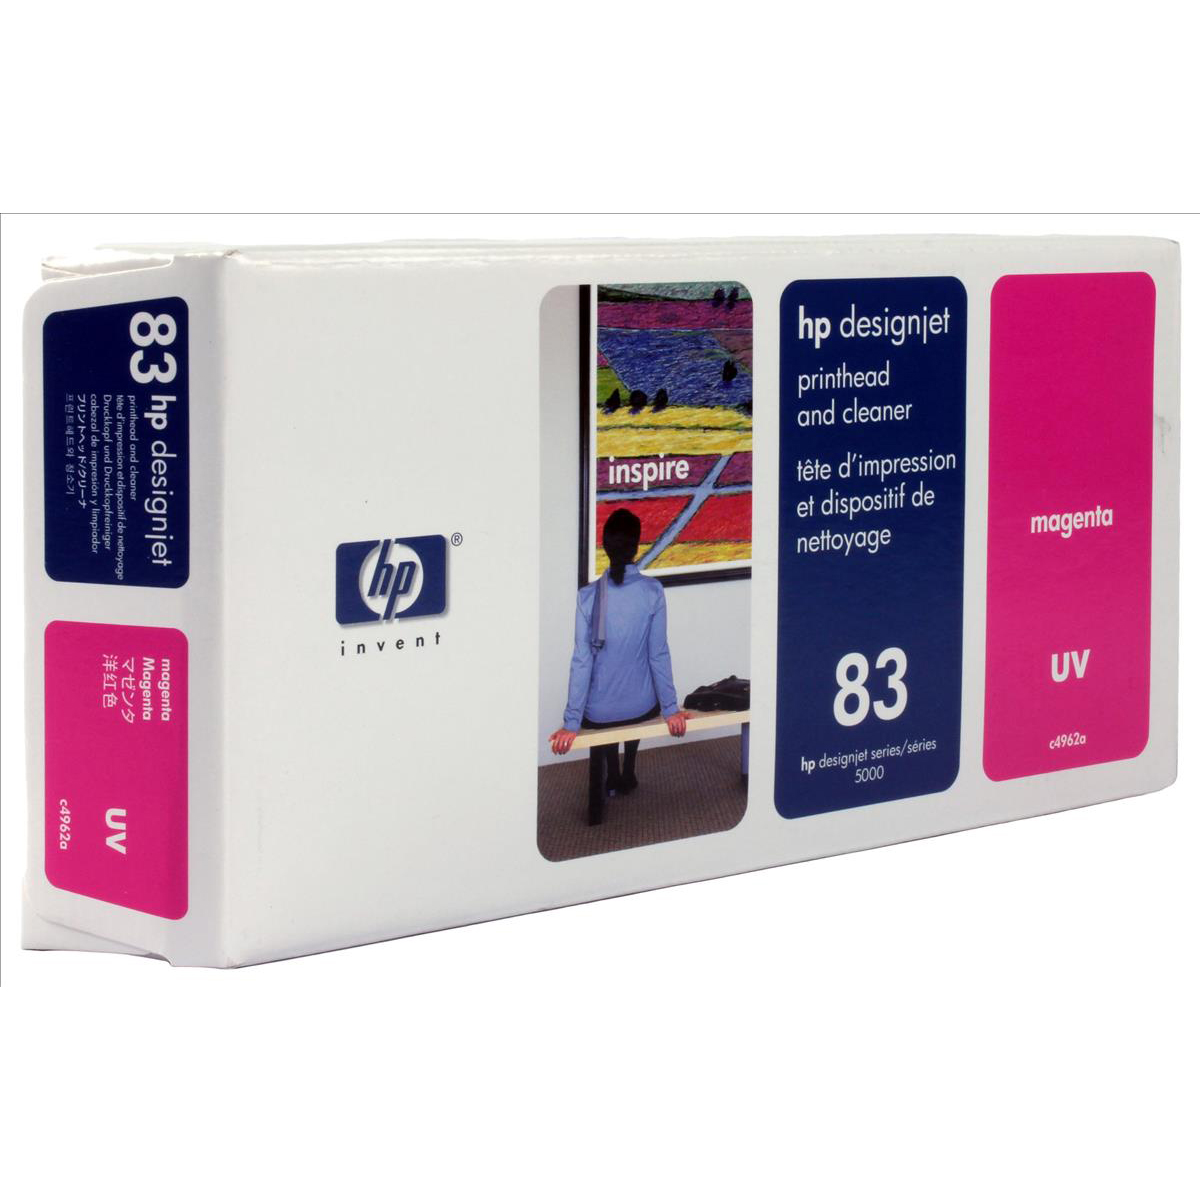 Hewlett Packard HP No.83 Printhead & Printhead Cleaner UV Magenta Ref C4962A *3to5 Day Leadtime*